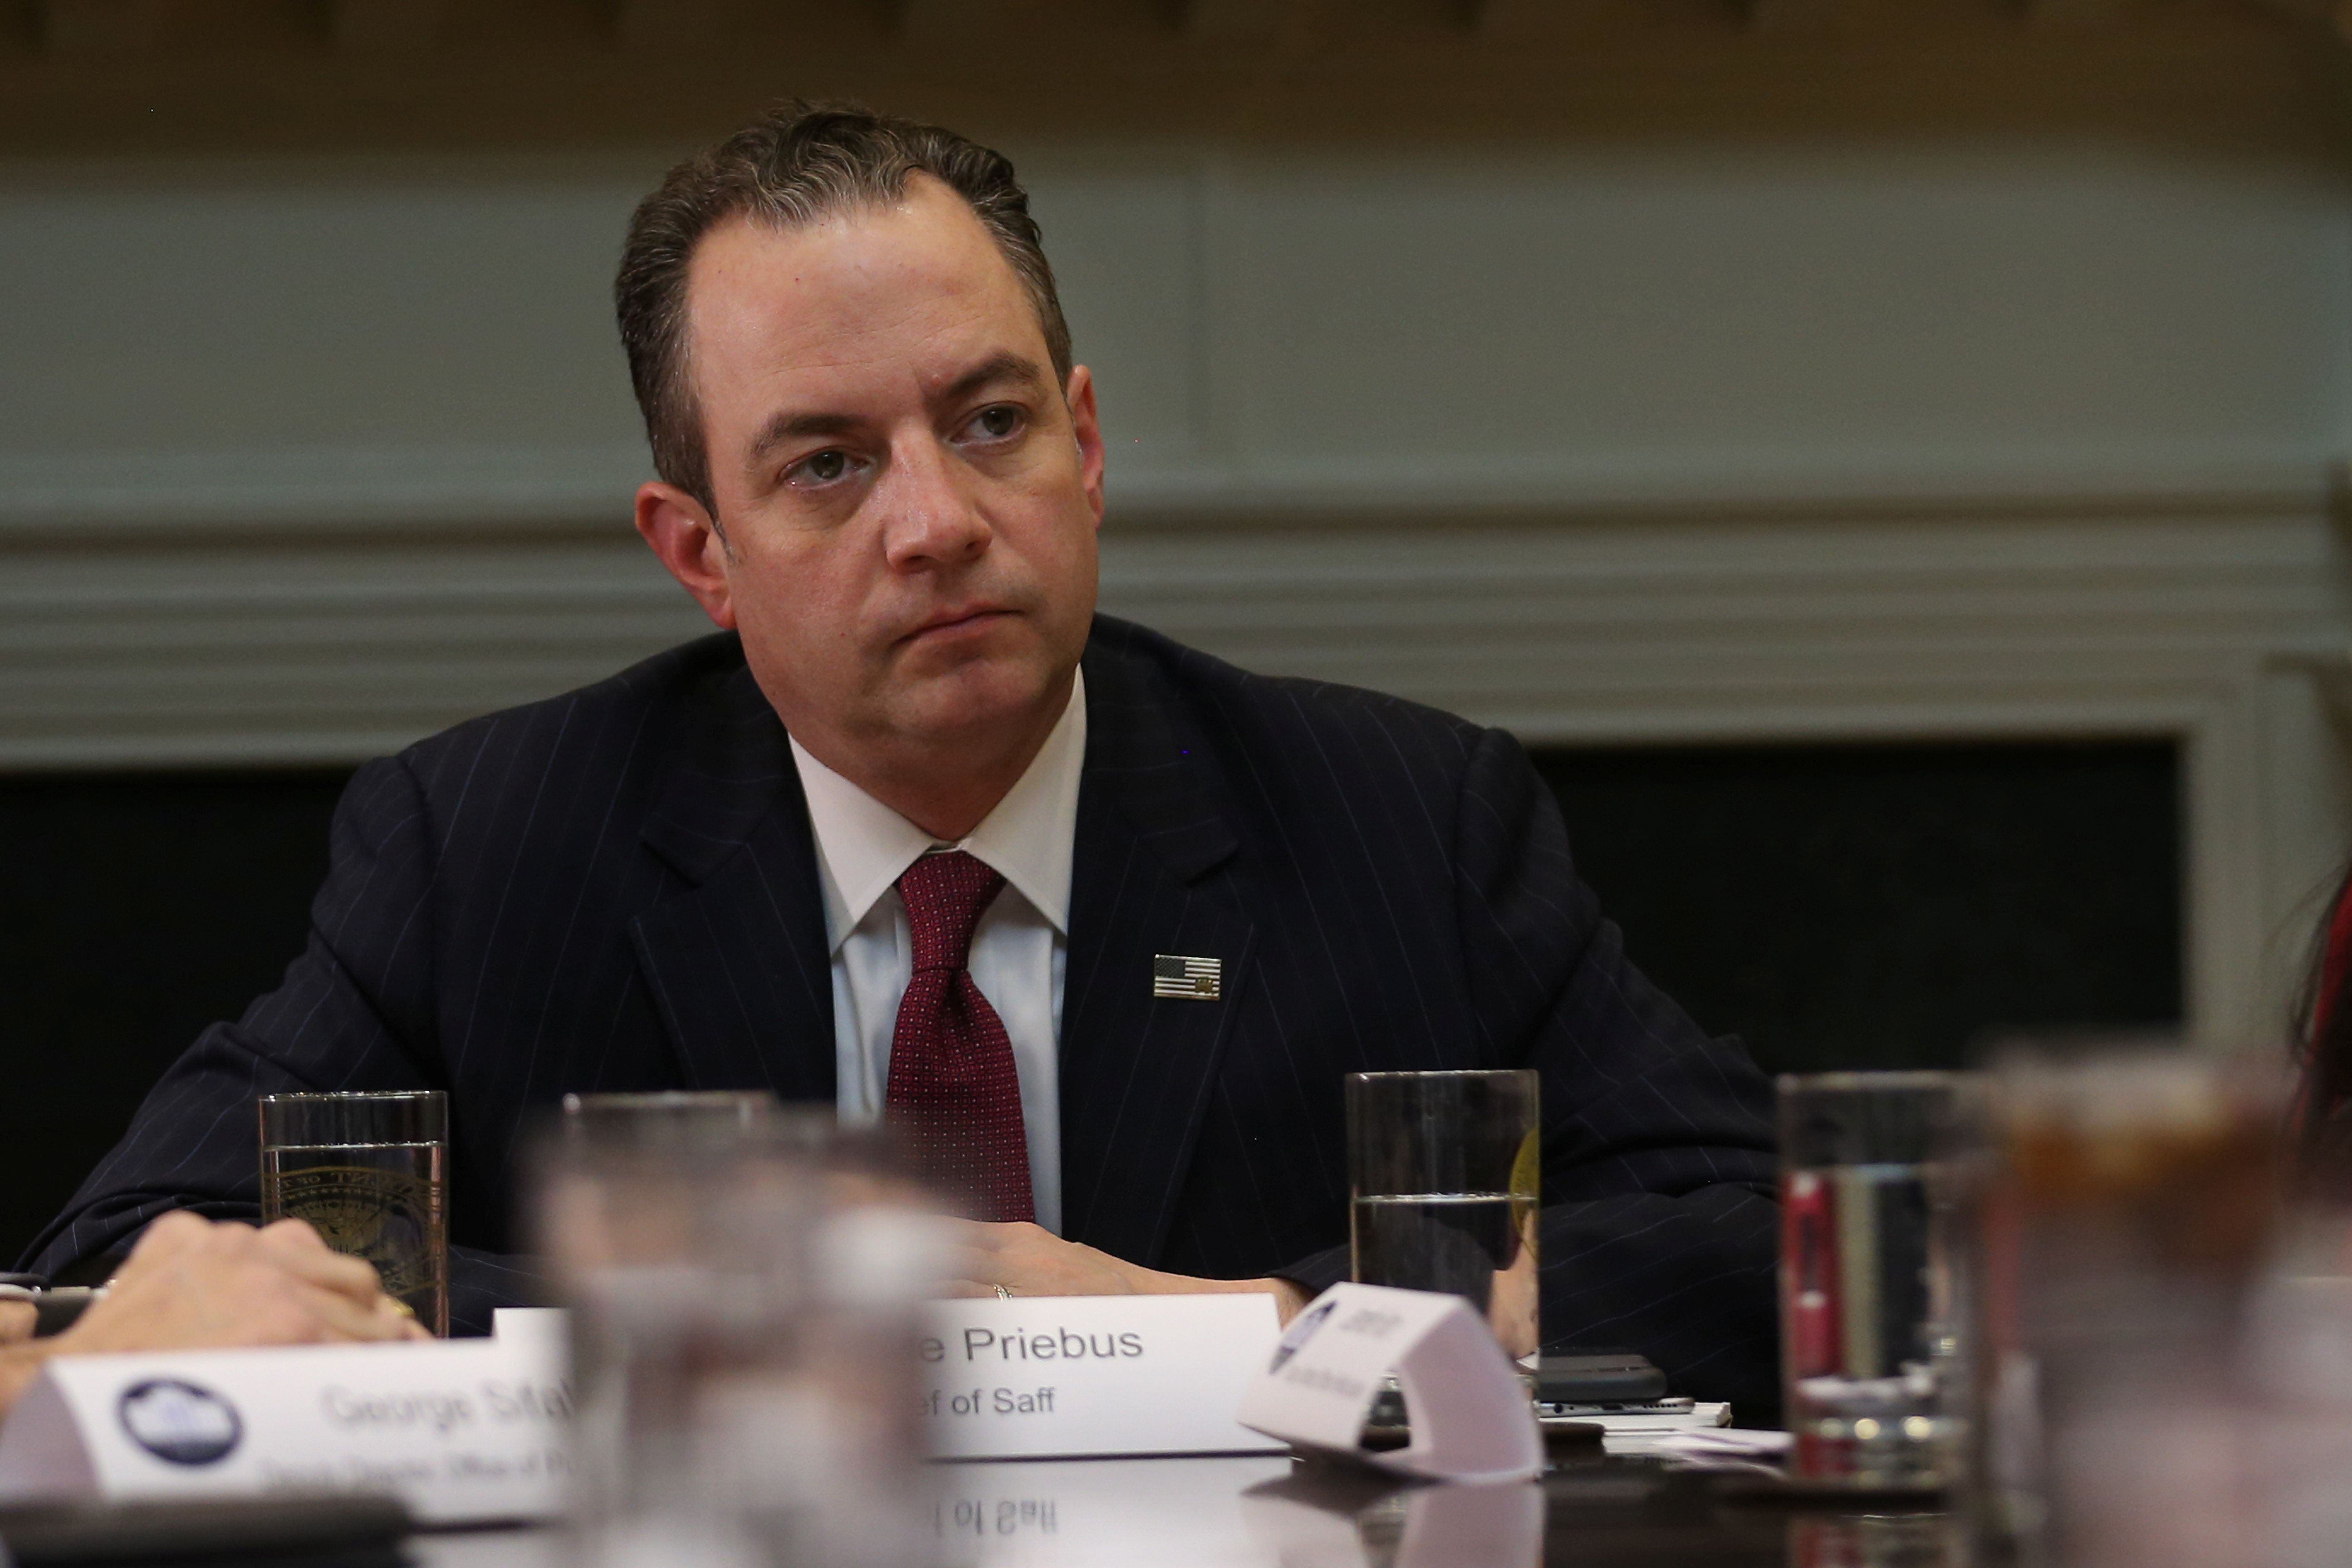 Chief of Staff Reince Priebus attends a breakfast meeting with small business leaders hosted by U.S. President Donald Trump (not pictured) at the Roosevelt room of the White House in Washington U.S., January 30, 2017.  REUTERS/Carlos Barria